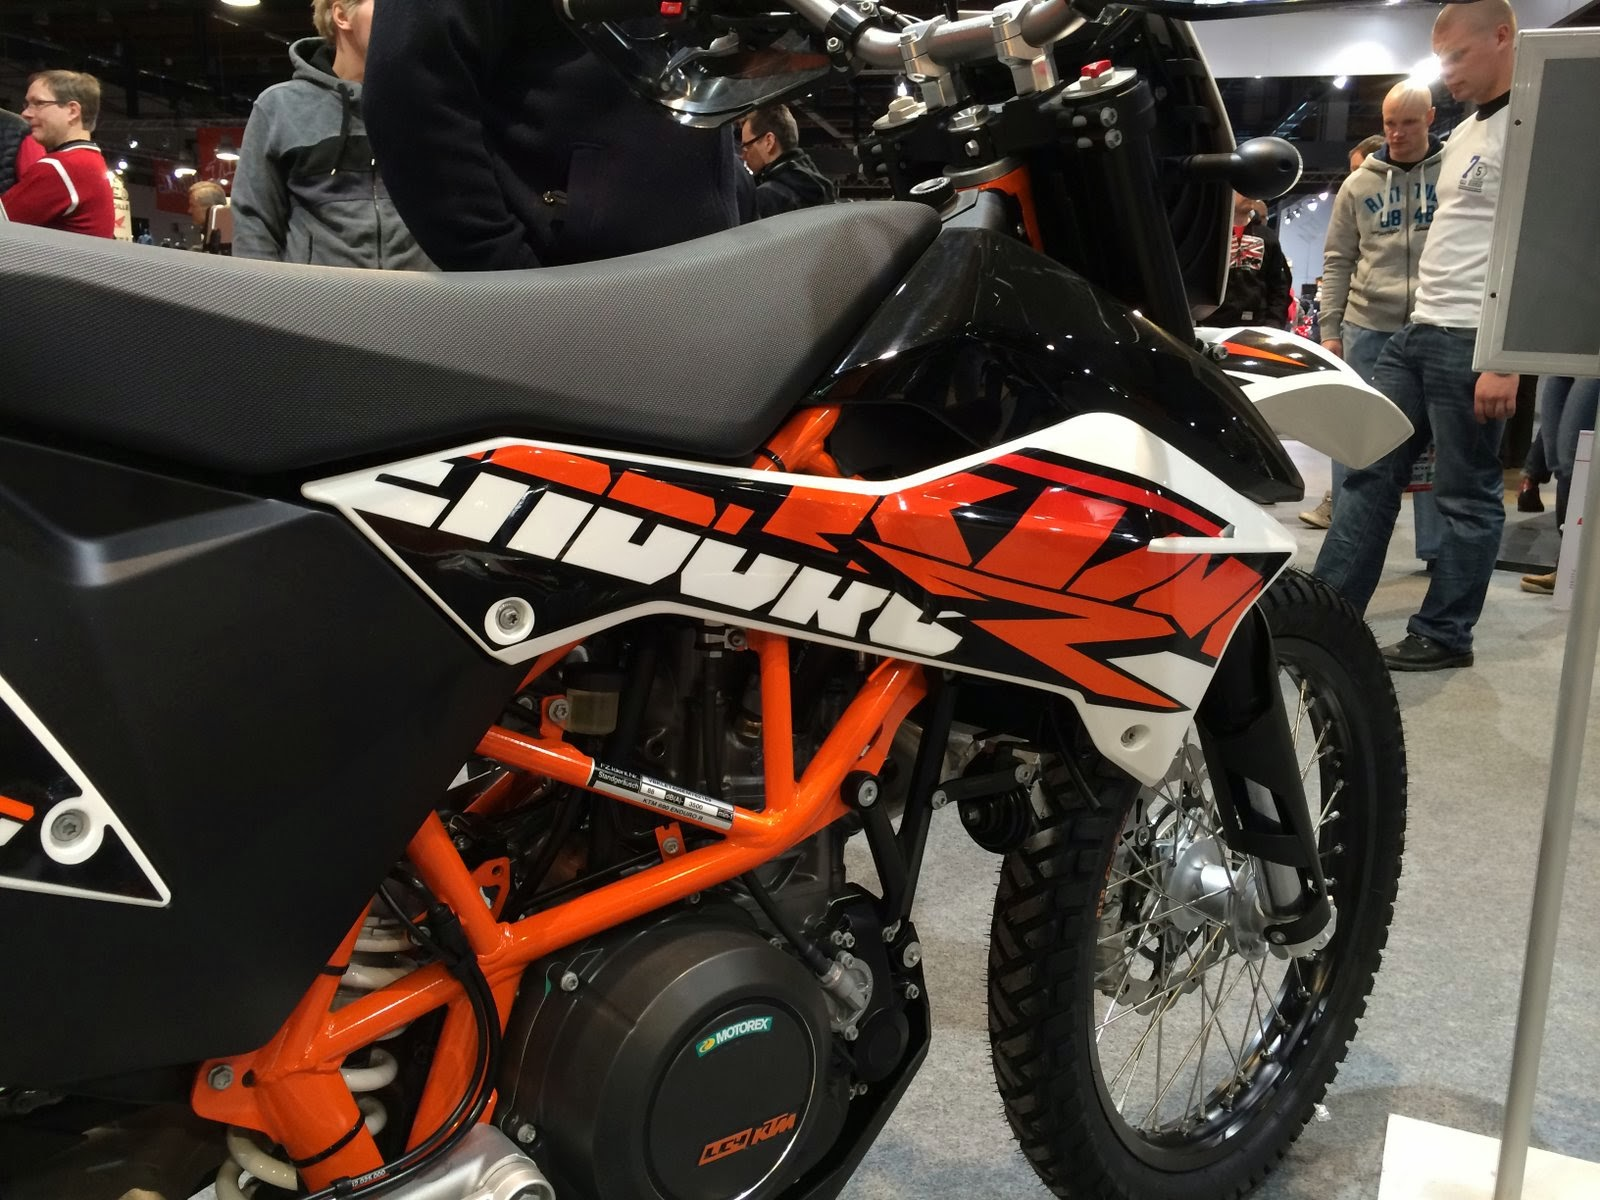 2014 KTM 690 Eduroro R graphics